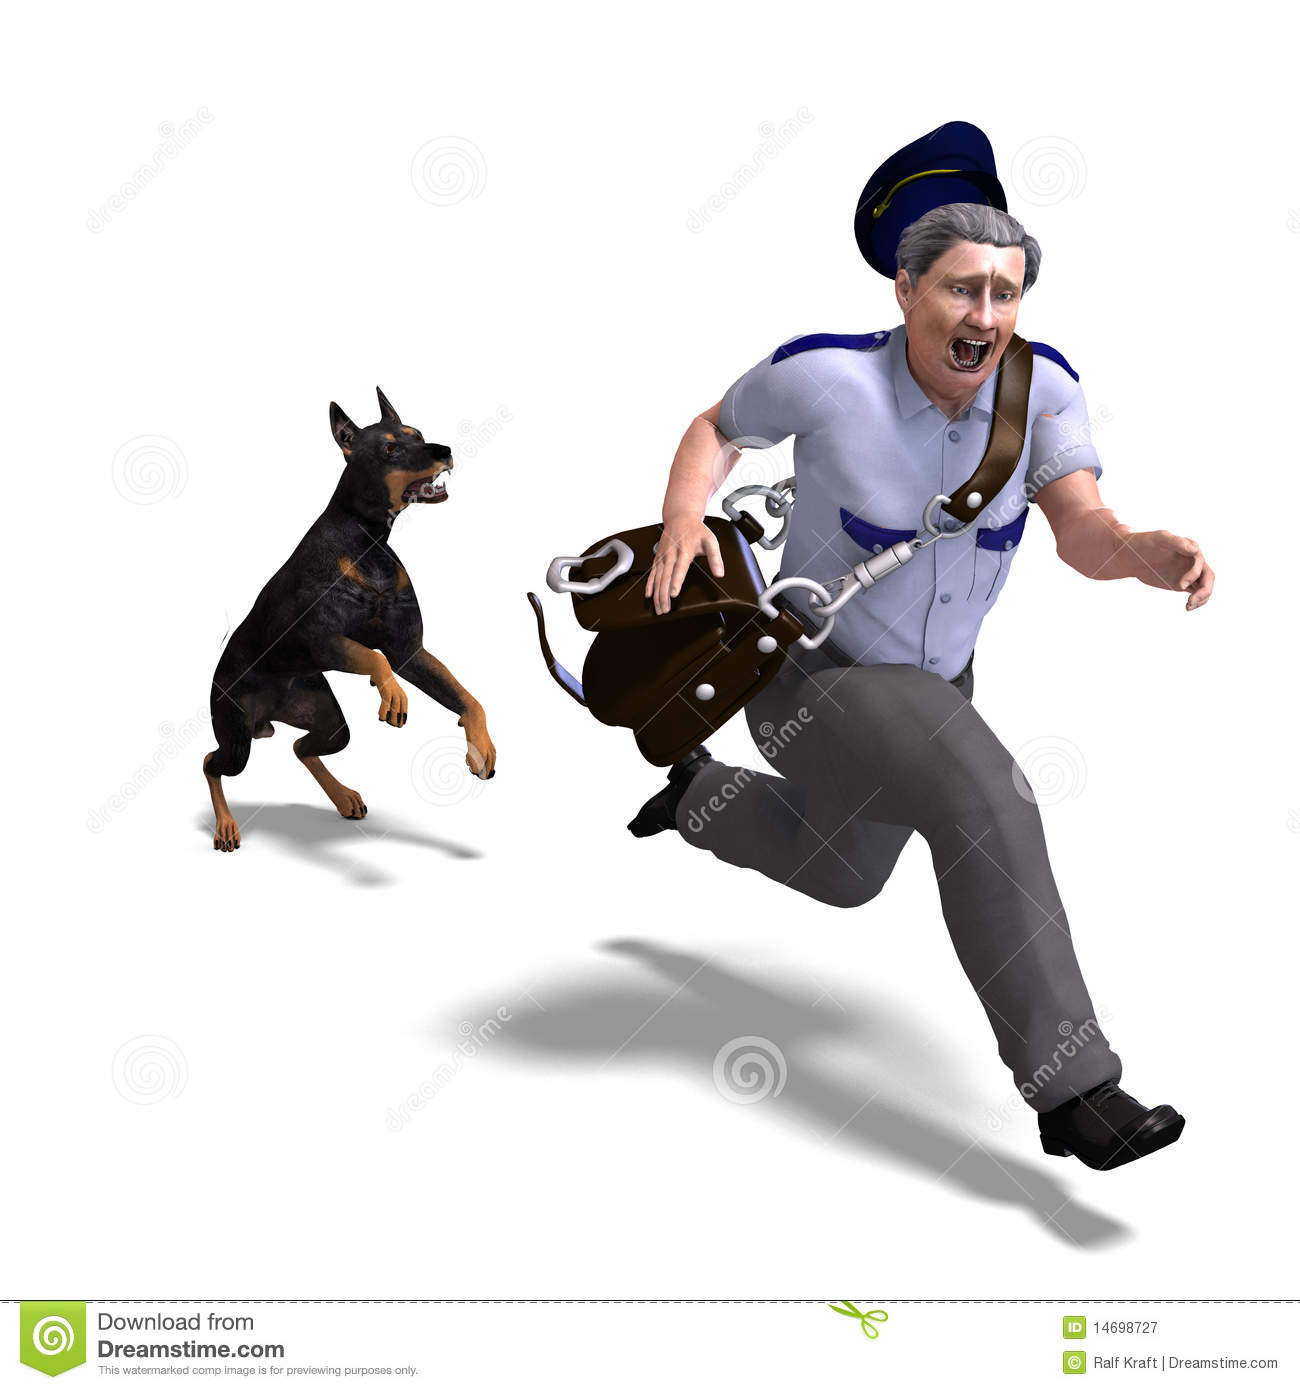 Getting Chased By A Dog